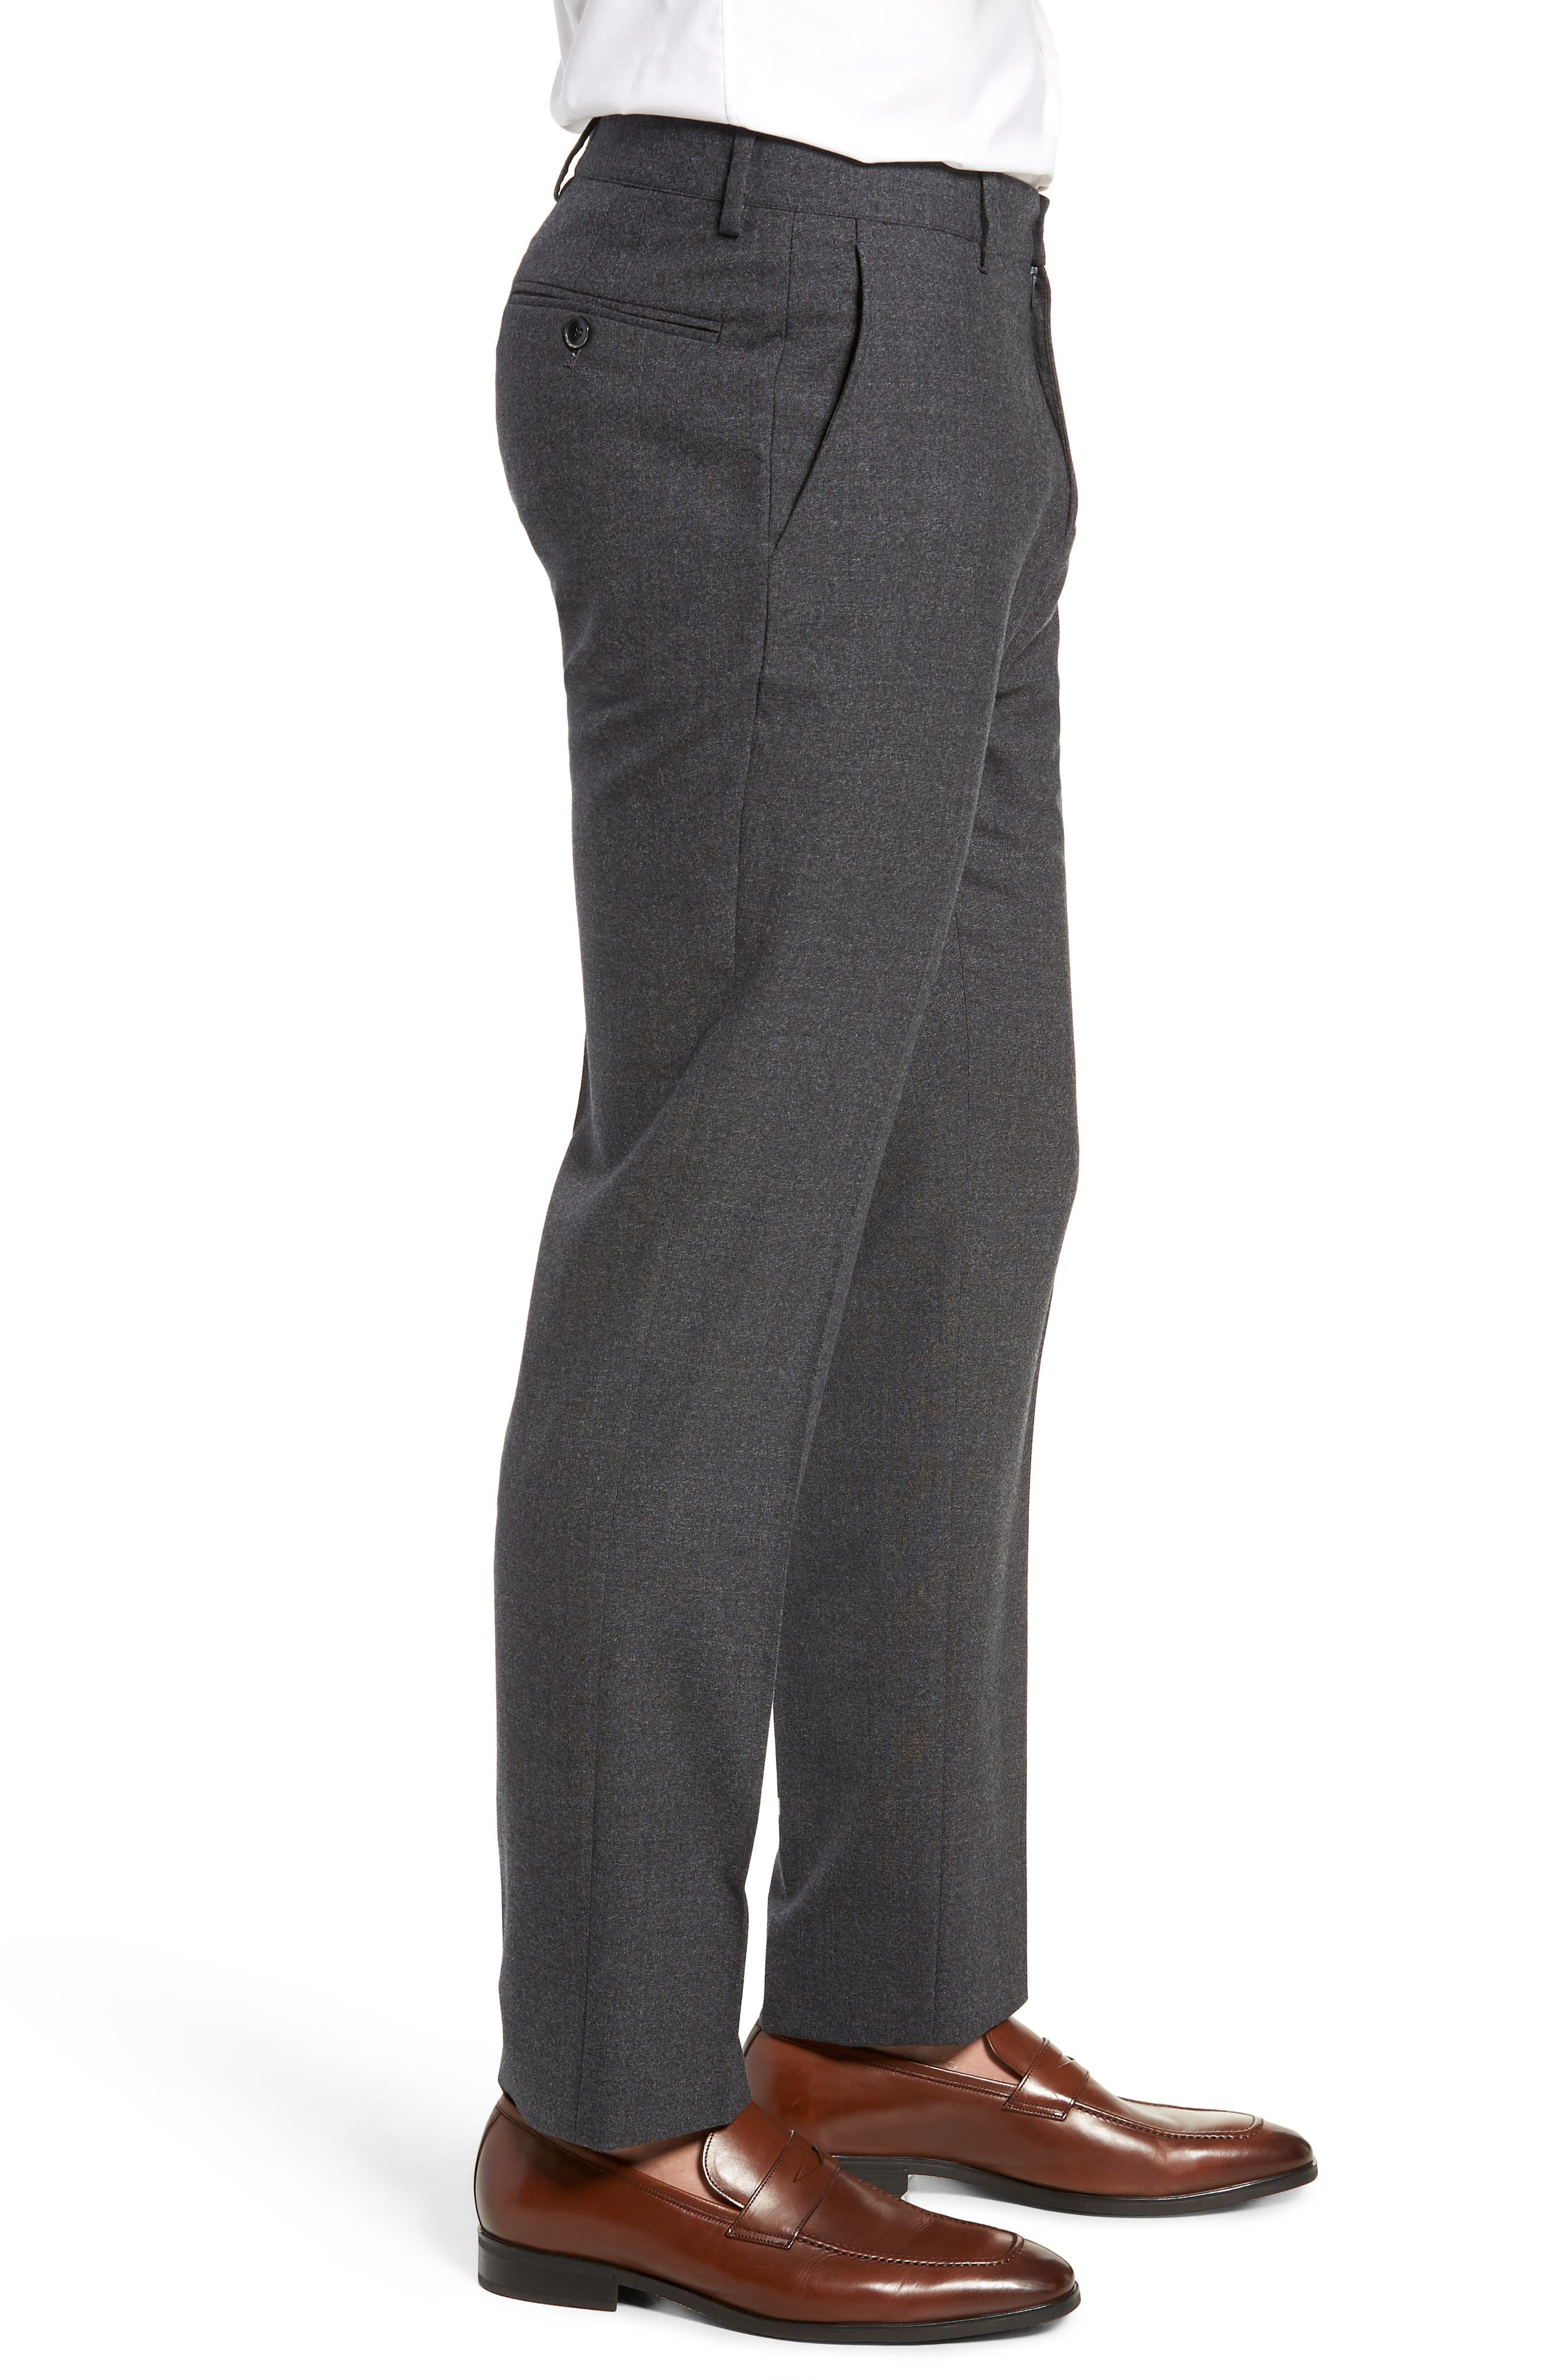 Trim Fit Flat Front Solid Wool Trousers,                             Alternate thumbnail 3, color,                             CHARCOAL